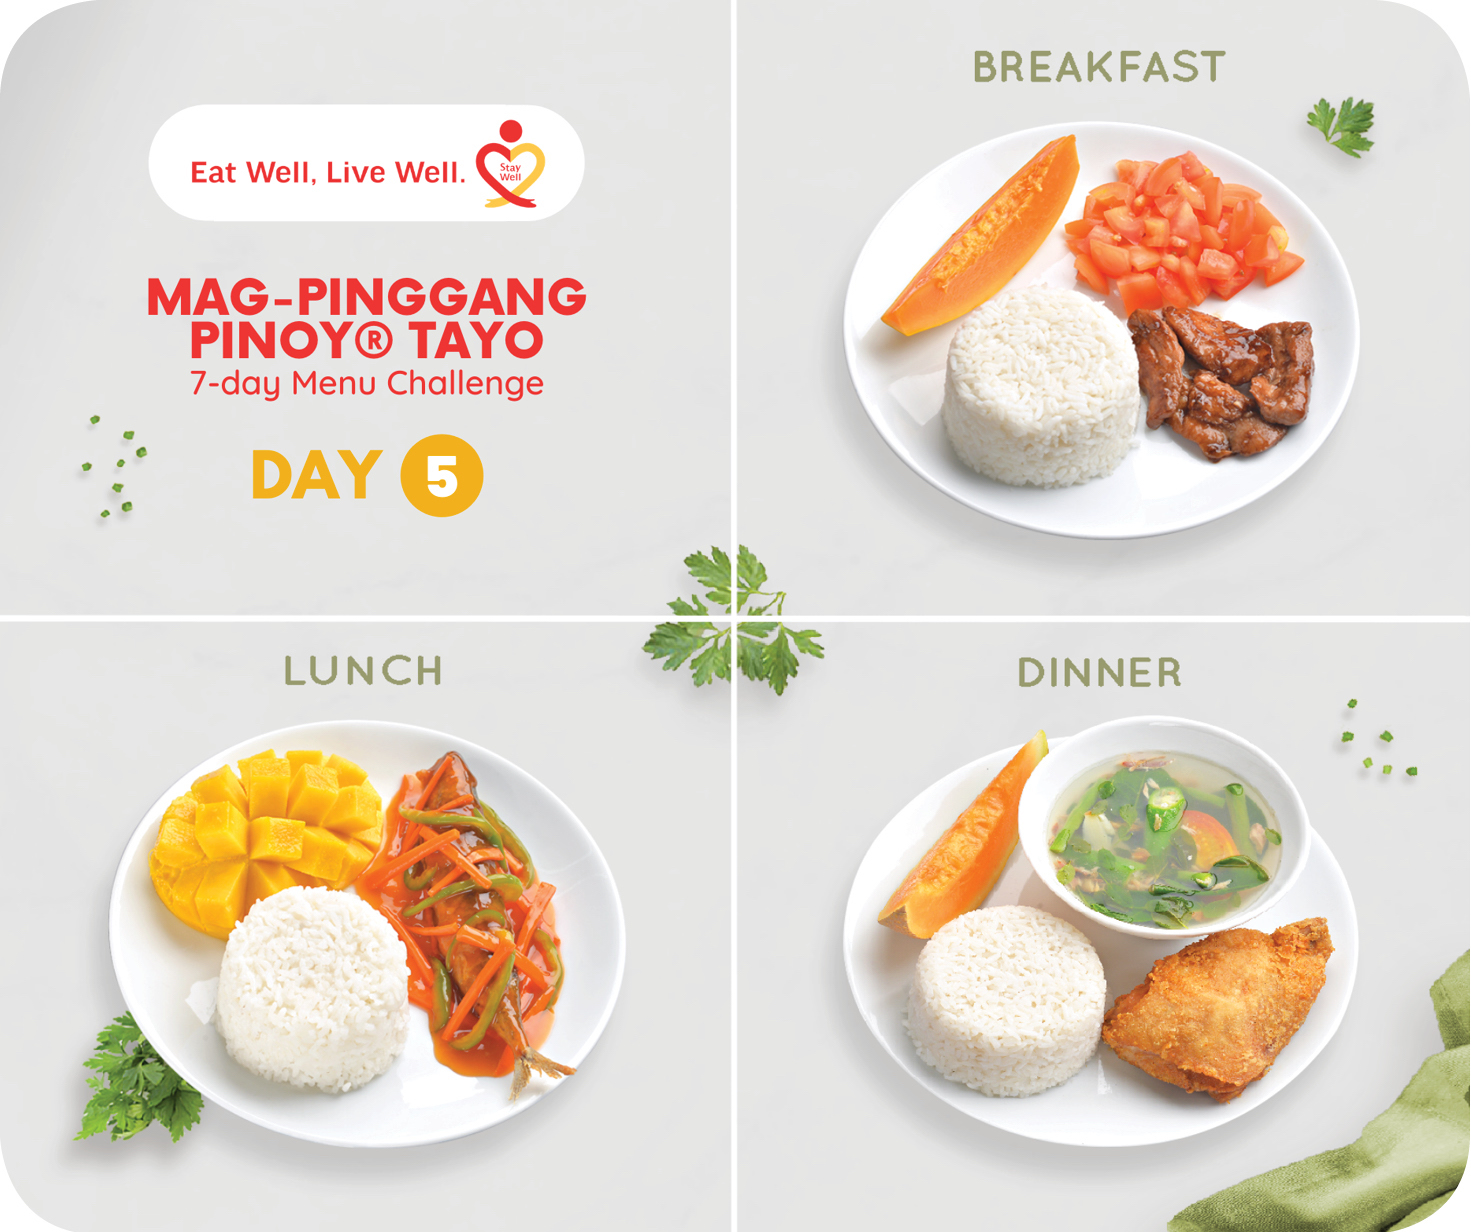 Day 5 Mag-Pinggang Pinoy® Tayo 7-day Menu Challenge